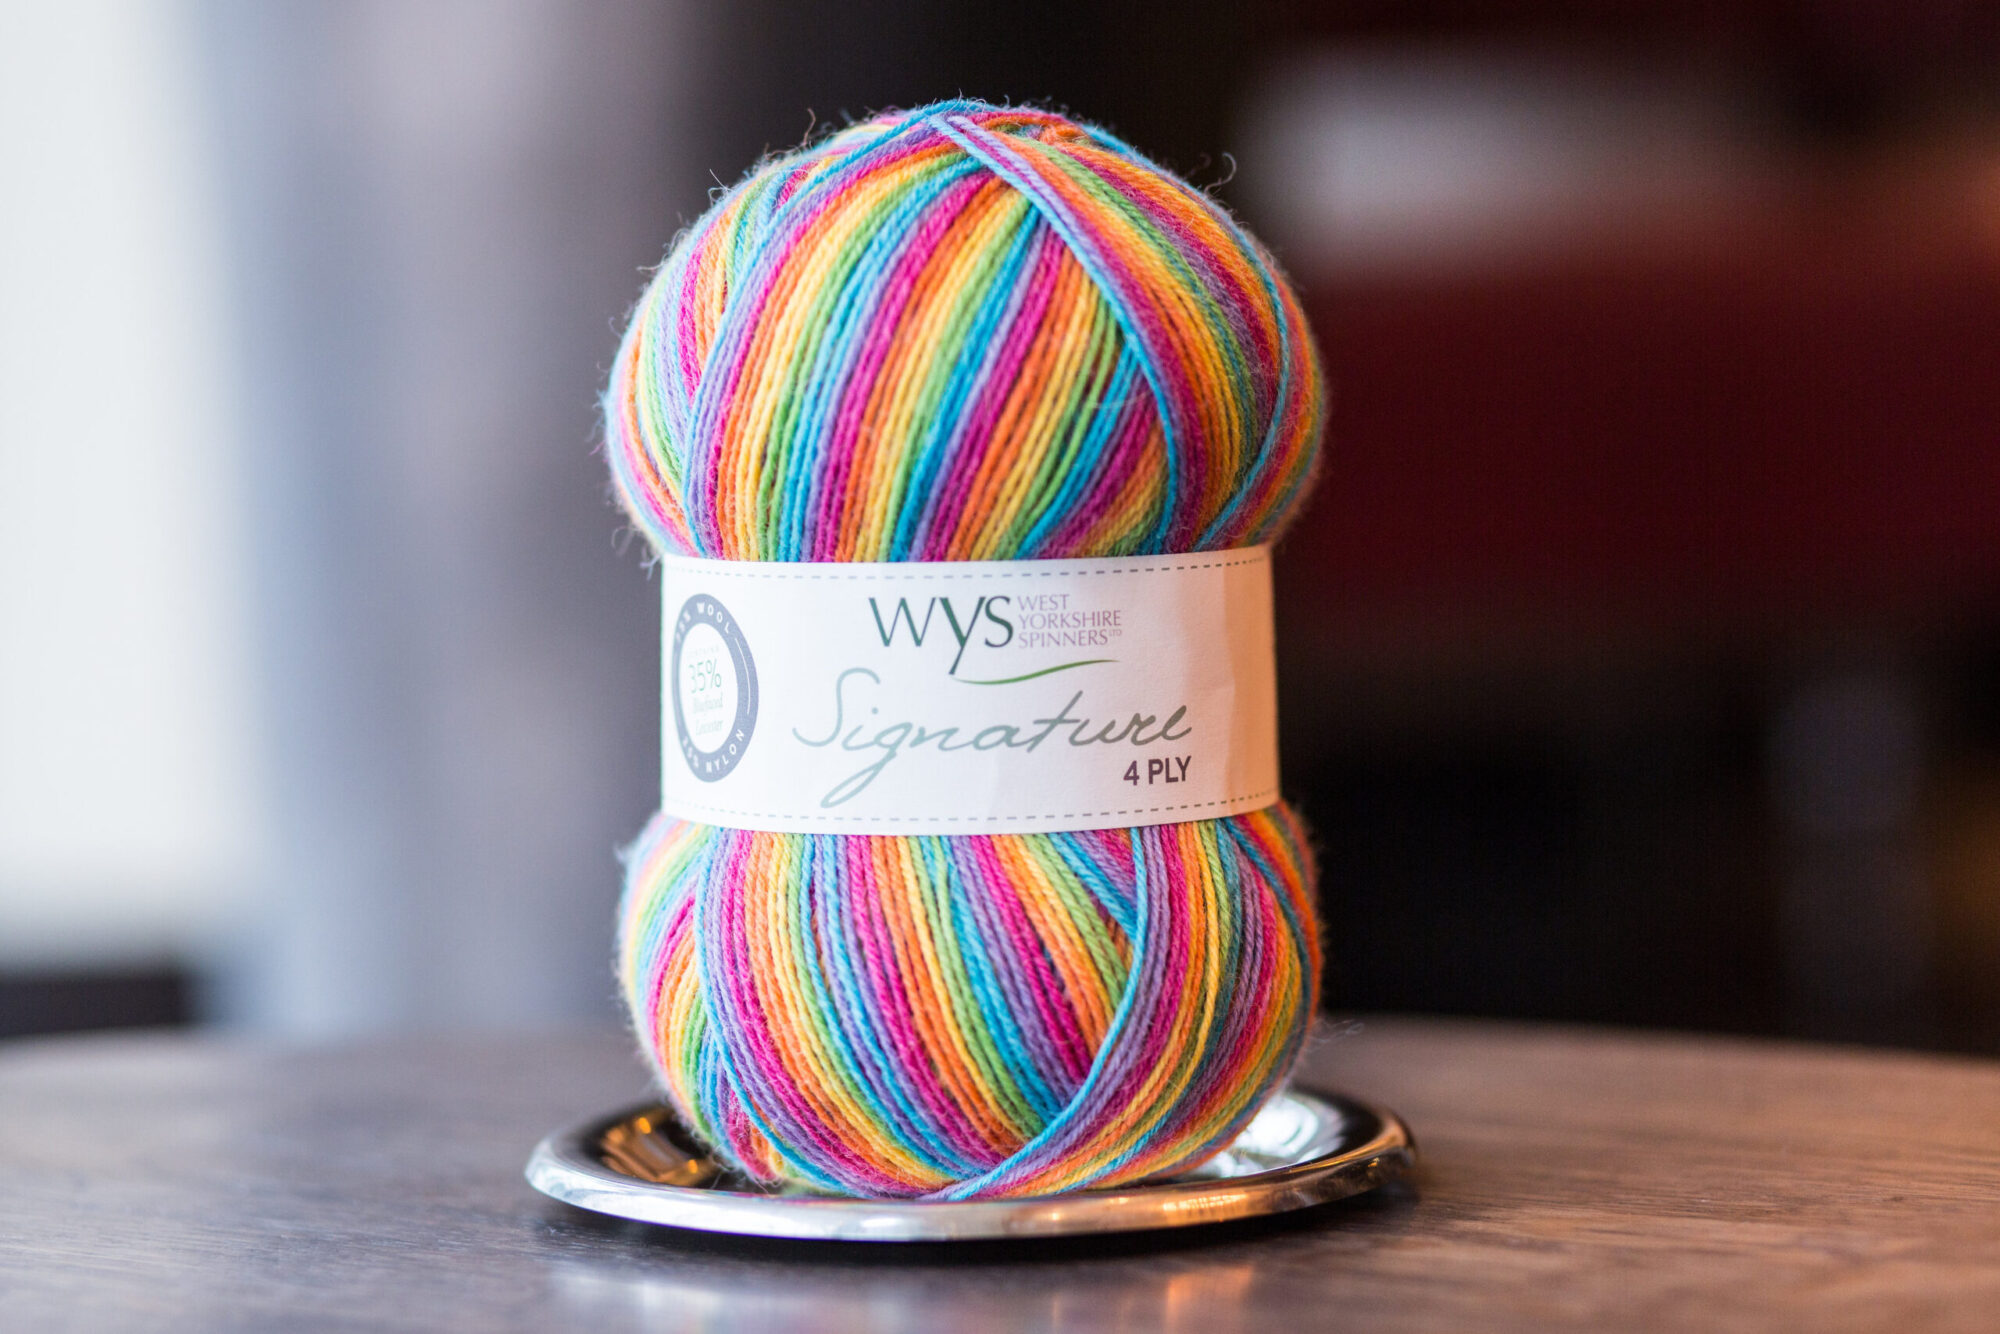 West Yorkshire Spinners  Signature 4ply – The Cocktail Range product image